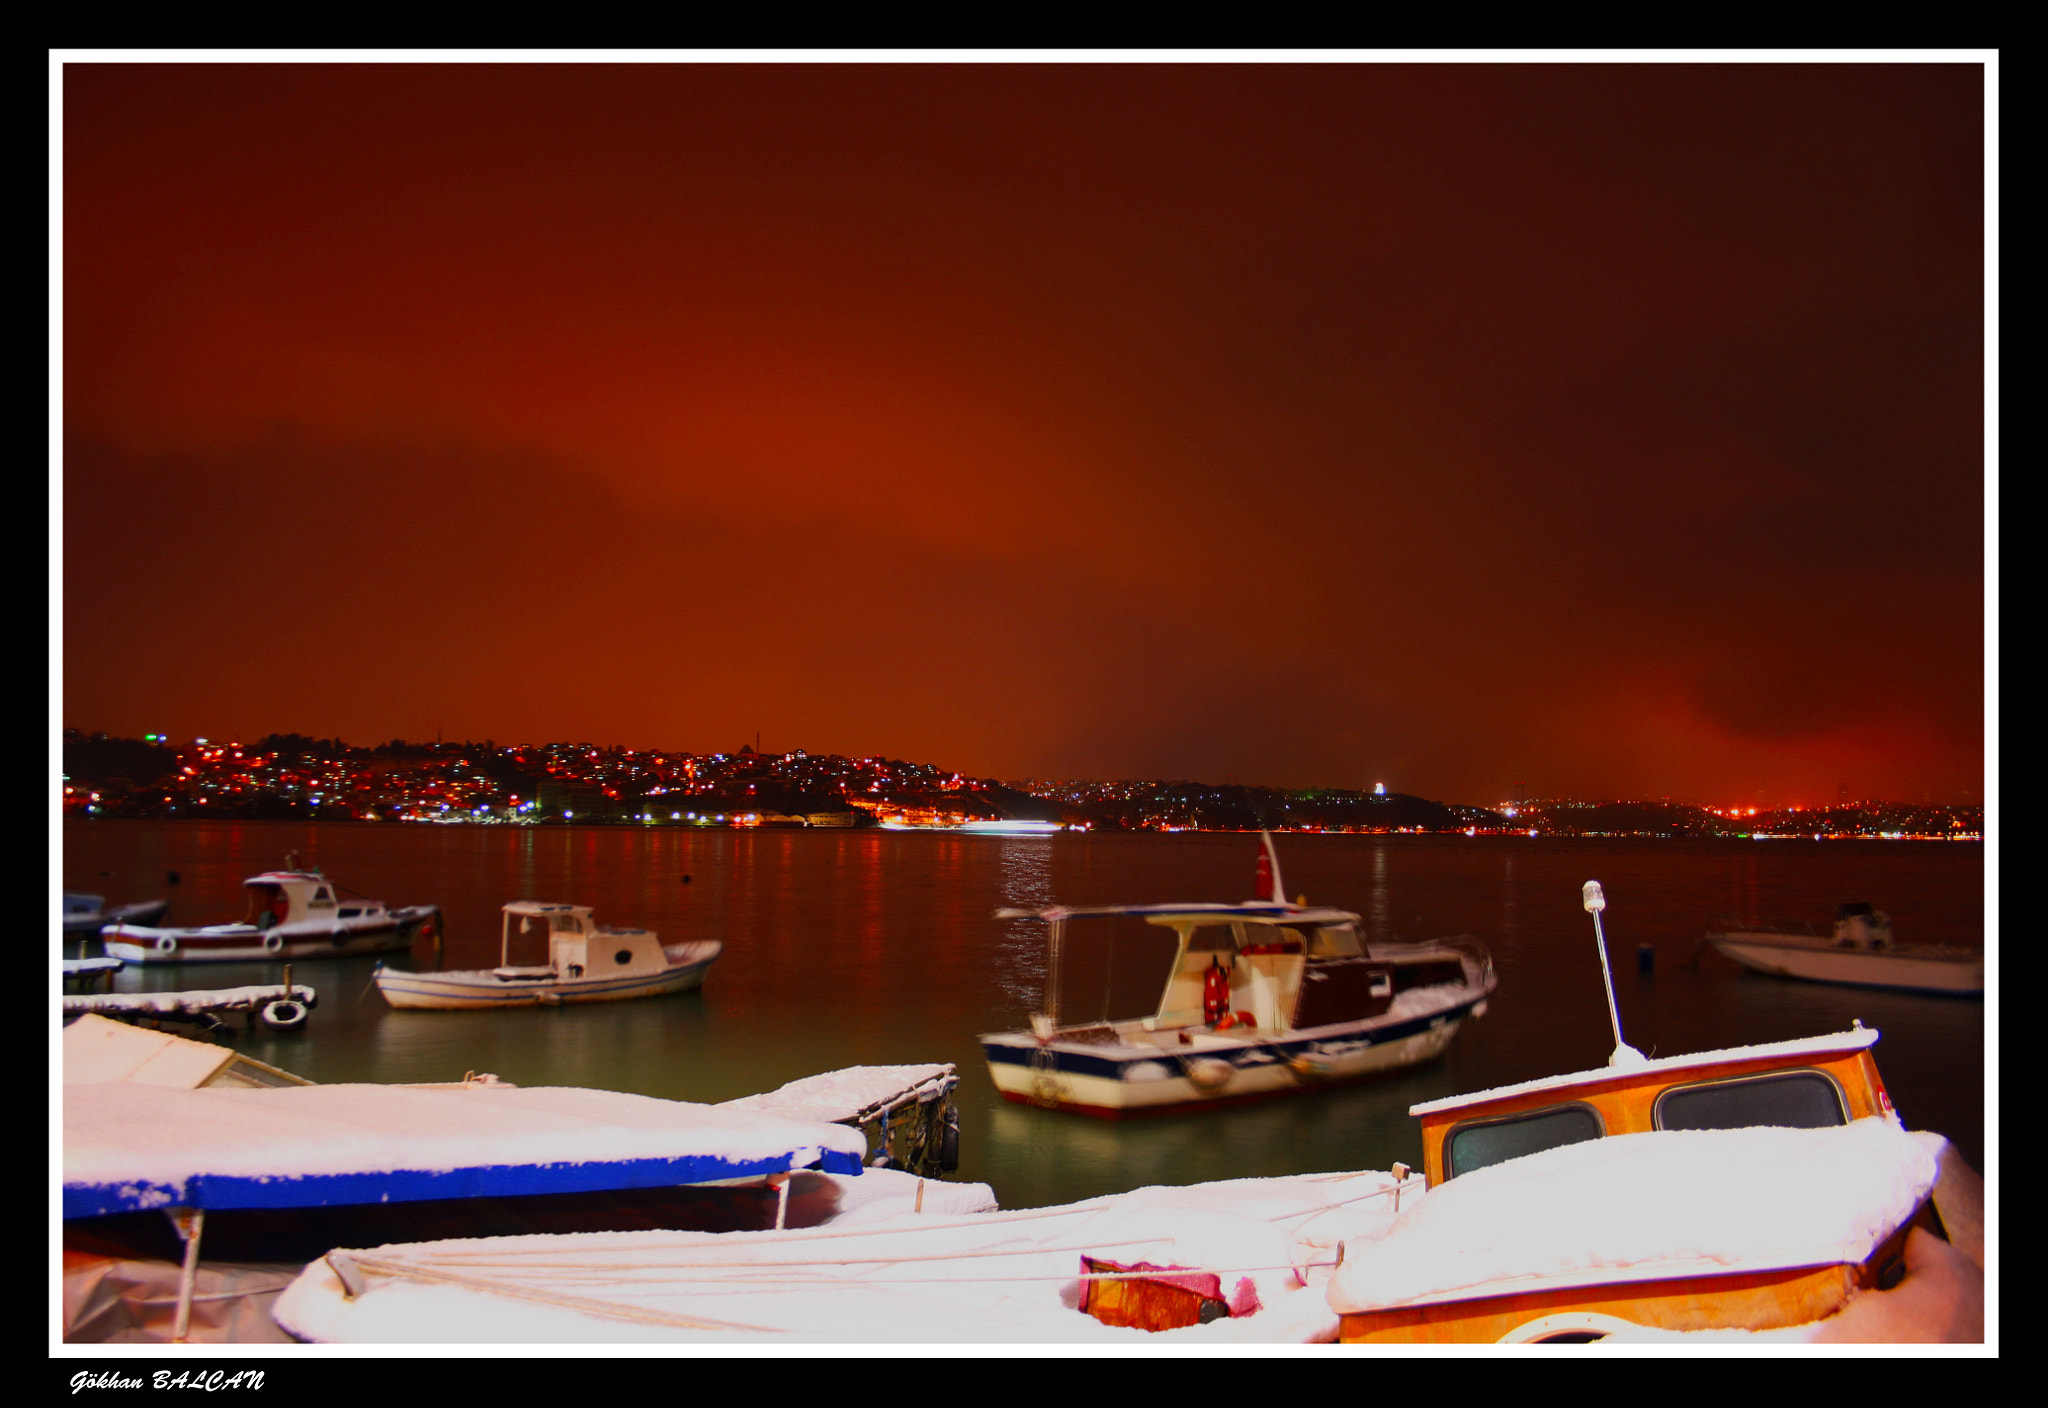 Photograph Red Night by Gökhan Balcan on 500px